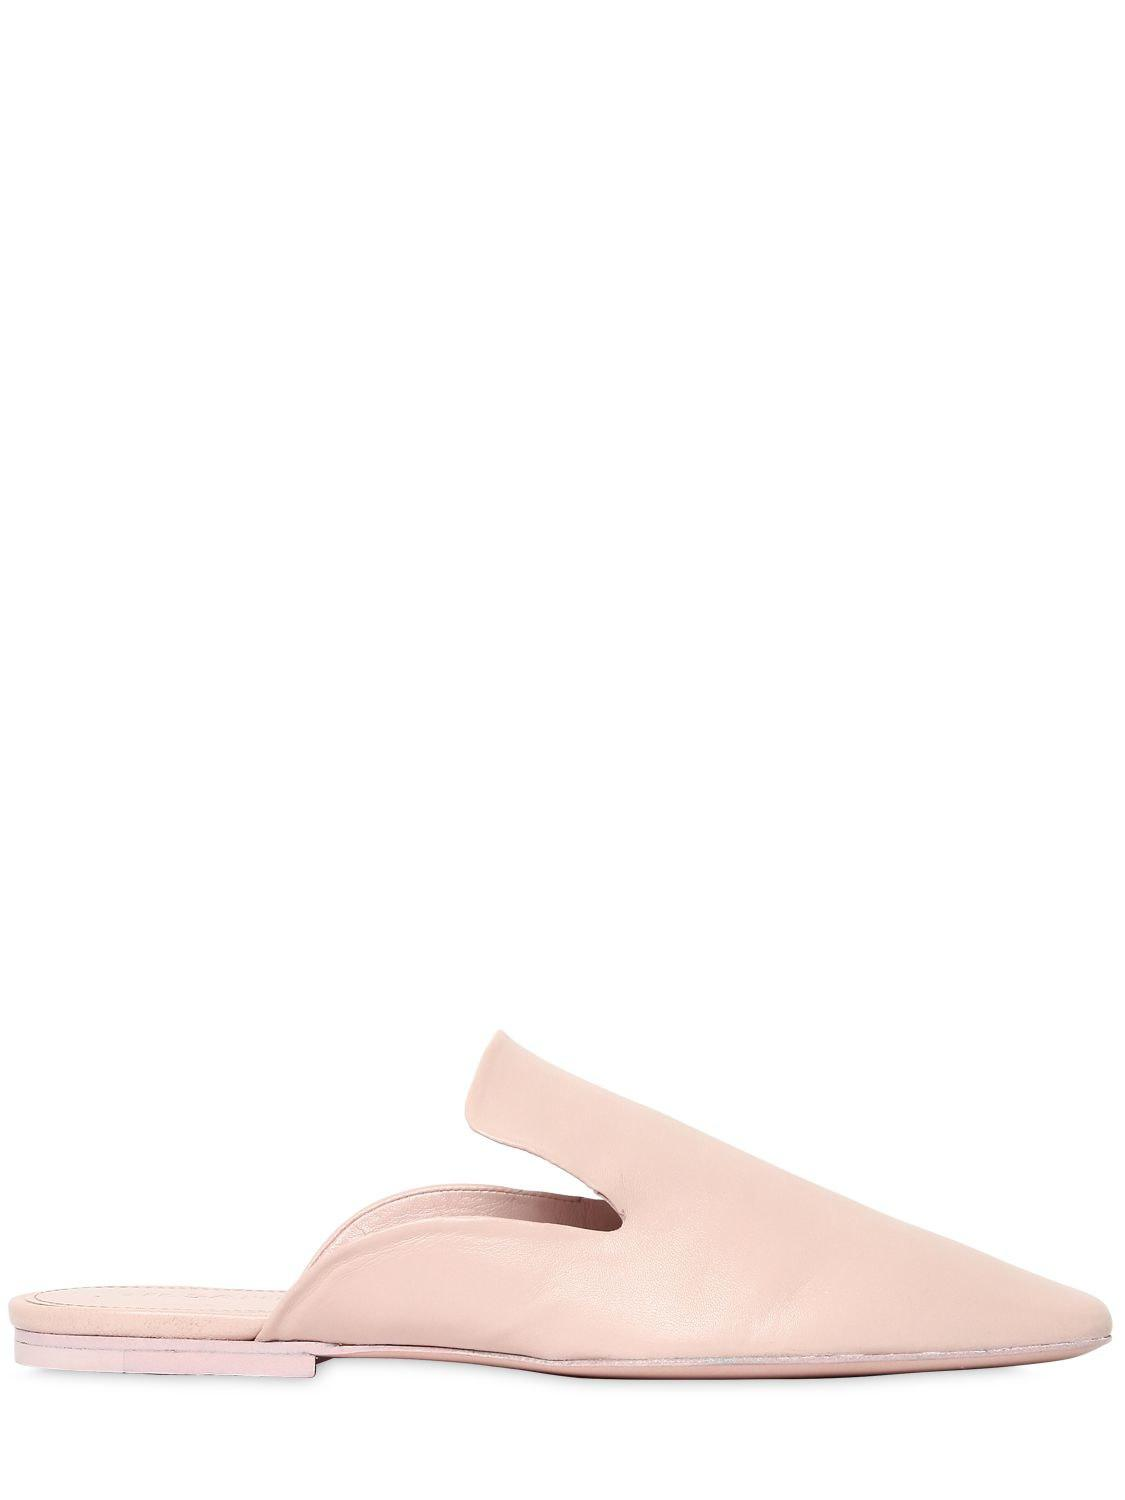 84490bbdcb3 Jil Sander 10mm Leather Mules in Pink - Lyst